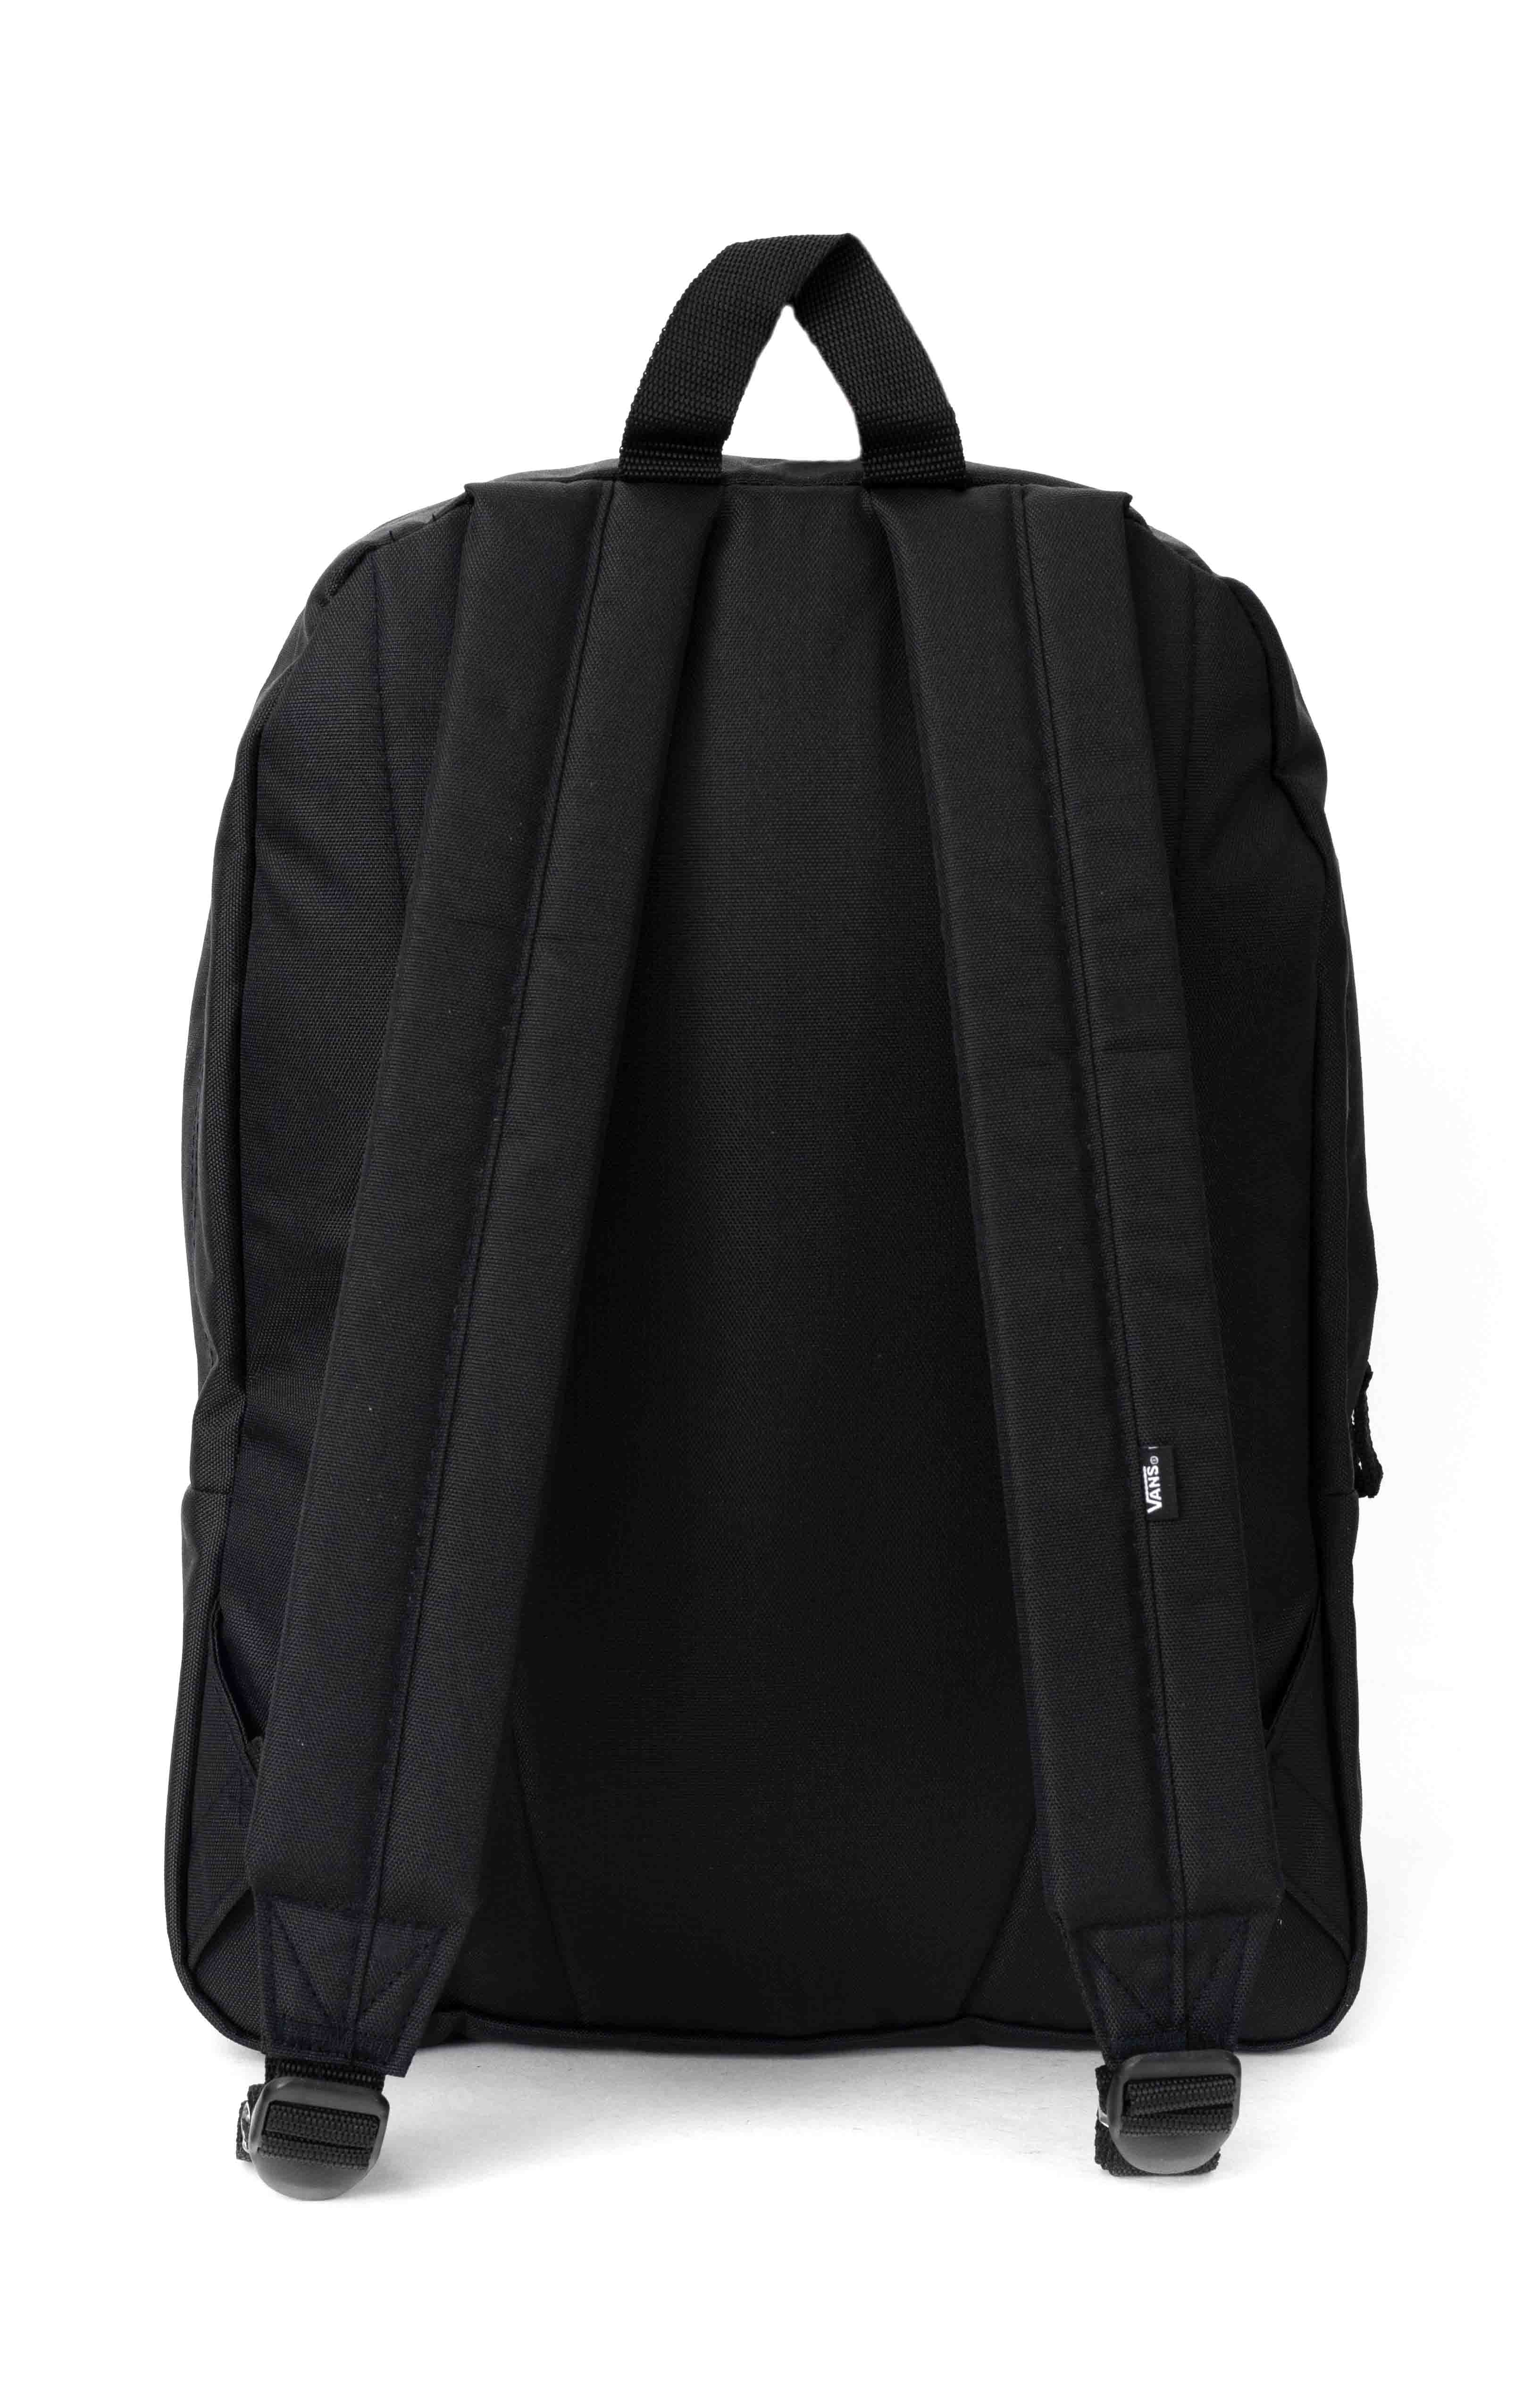 Realm Backpack - Misc  3